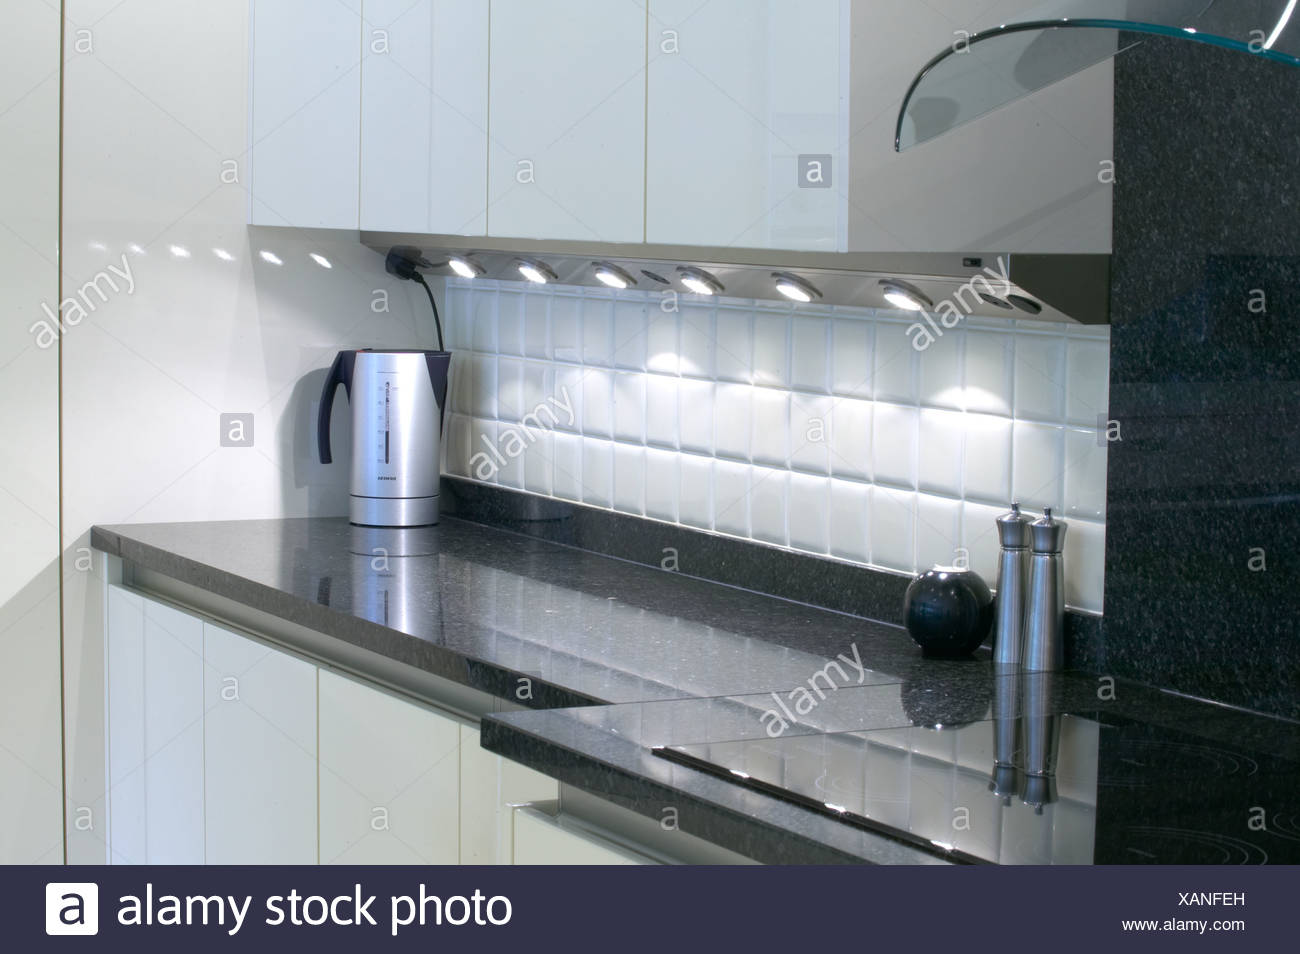 Modern kitchen in new house with expensive appliances Stock Photo ...